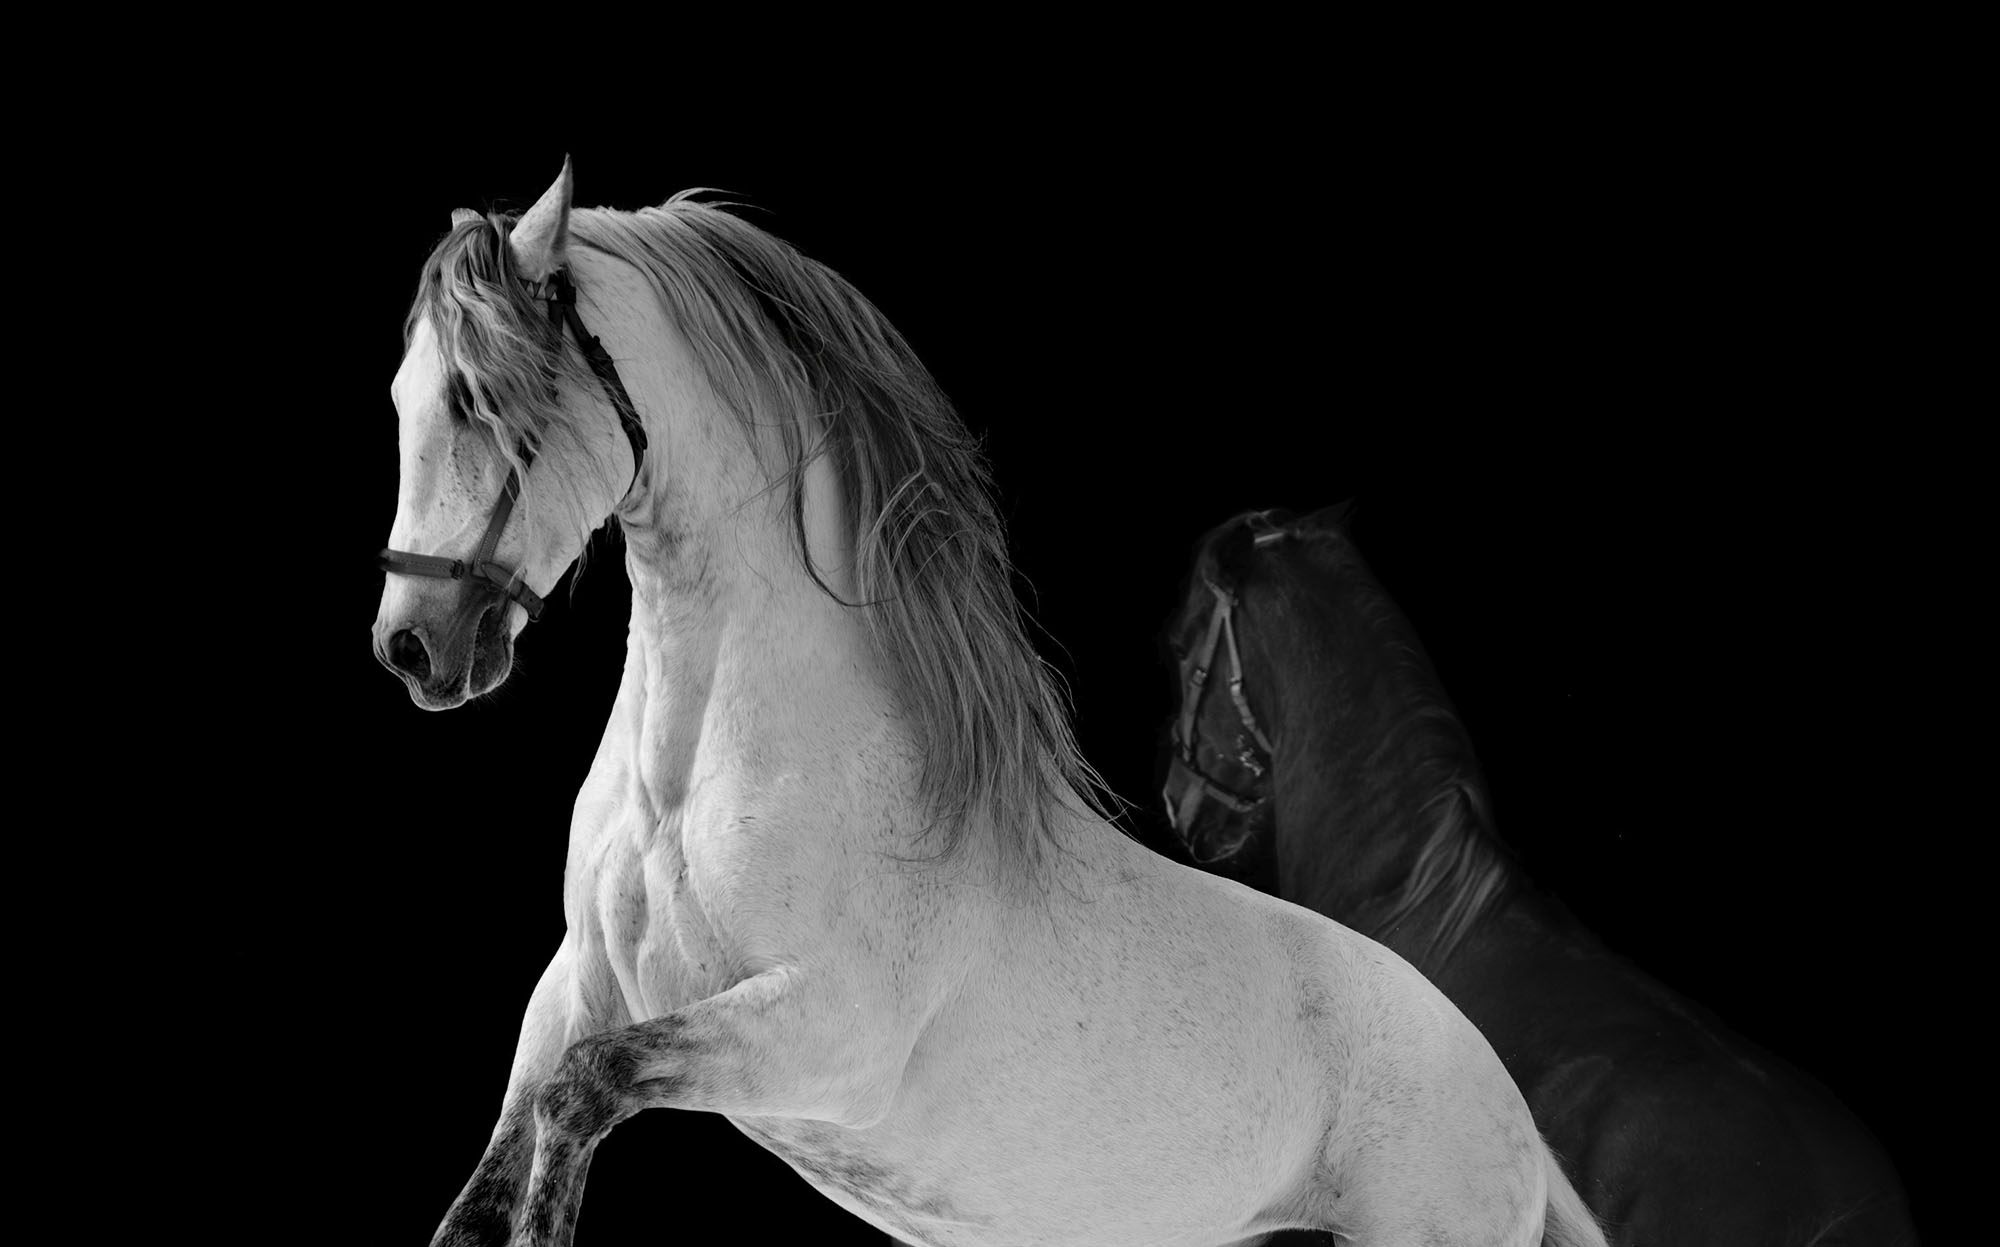 THE WONDERFUL ANDALUSIAN HORSE